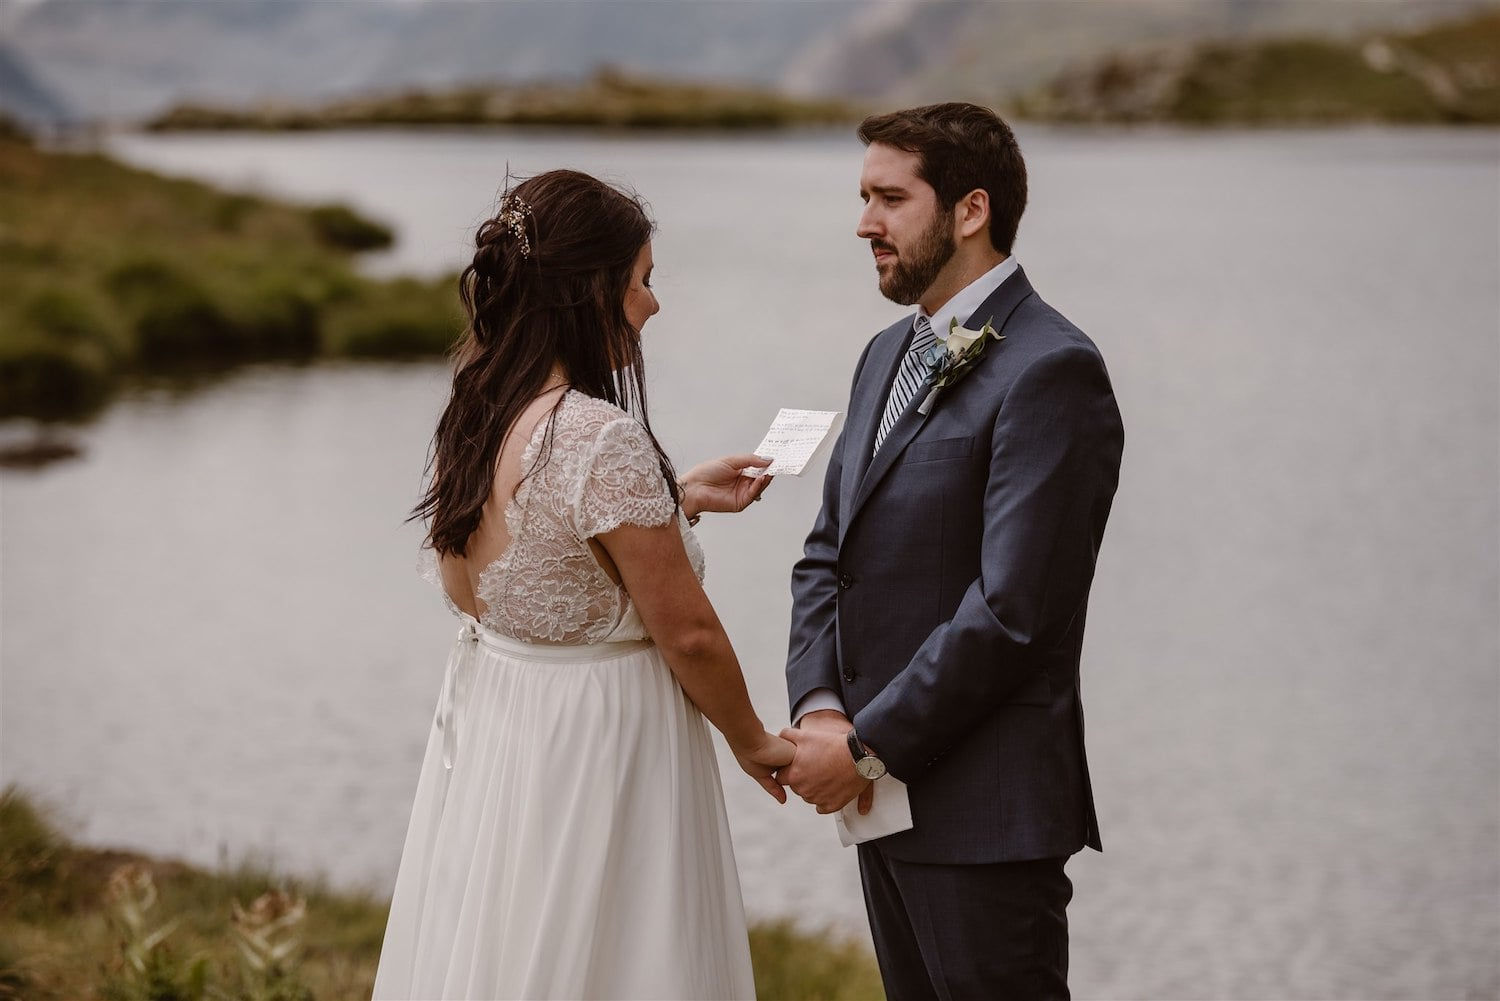 Couple exchanging vows during their elopement in Switzerland